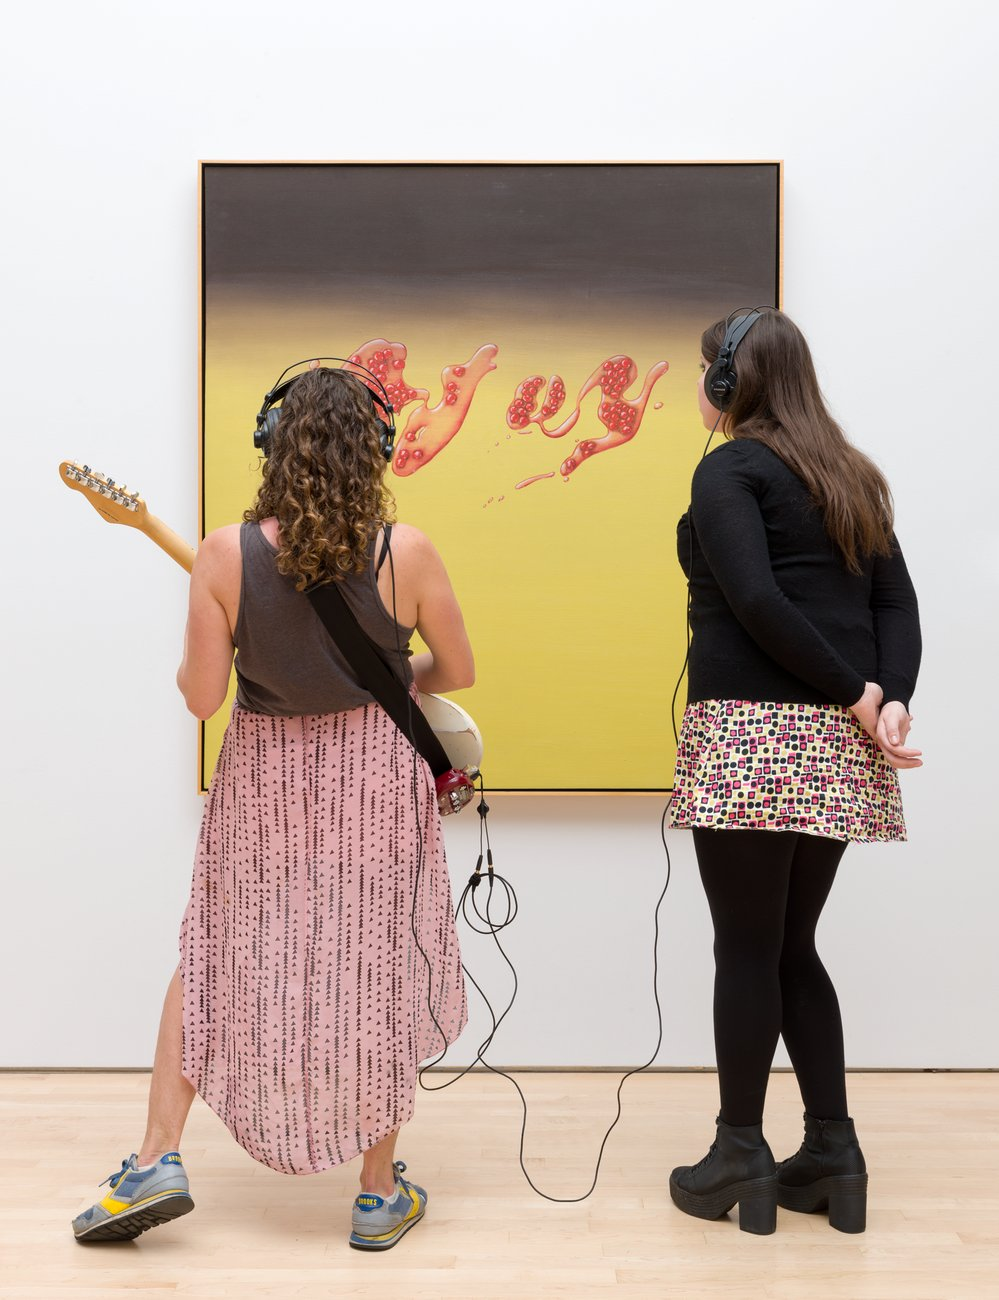 Two women, one playing a guitar and one wearing headphones, look at a painting, Kallmyer Allen, Soundtracks